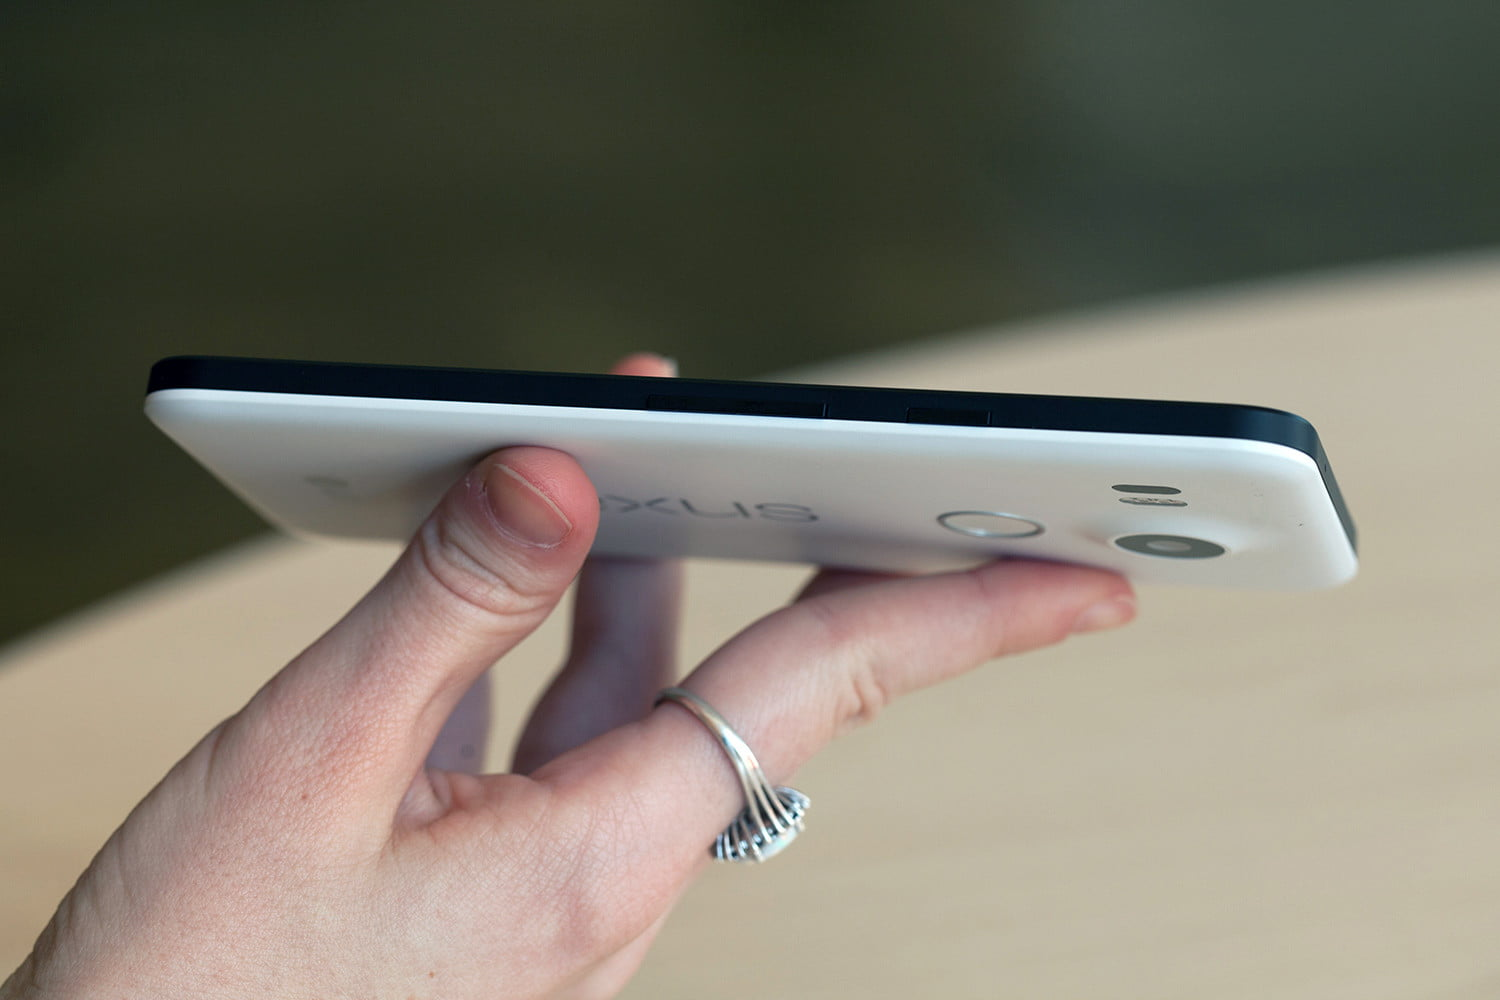 Nexus 5X Review | Bad battery life sinks the 5X